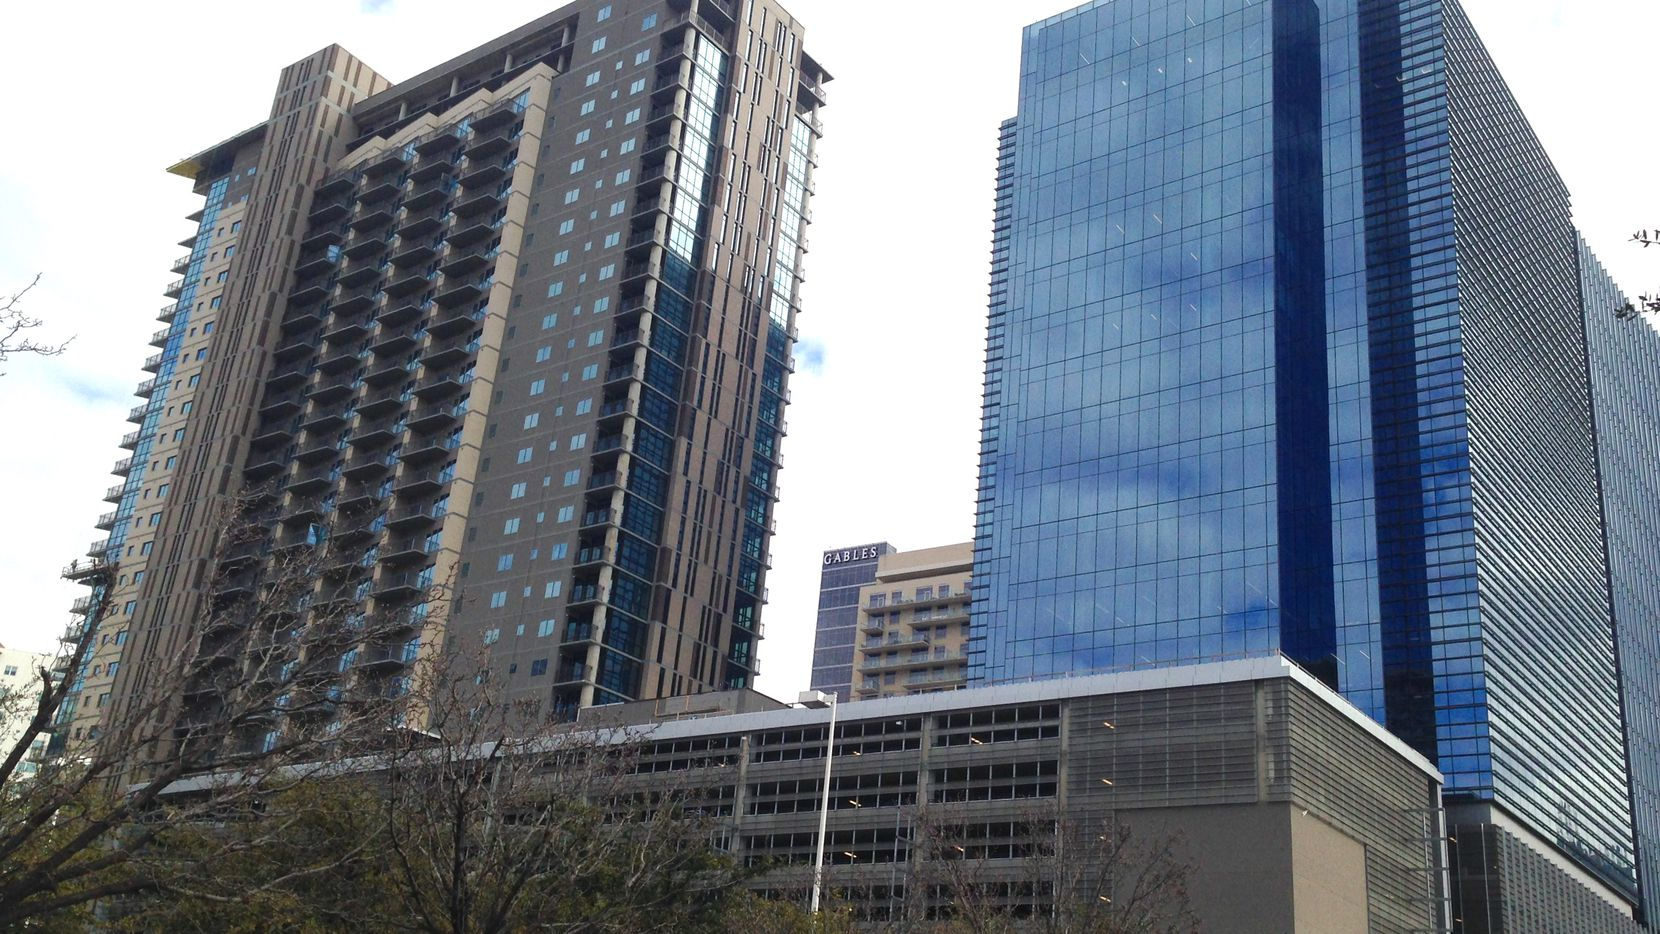 The $370 million sale of the high-rise Union Dallas development north of downtown was one of the biggest Big D deals in the first half of '20.